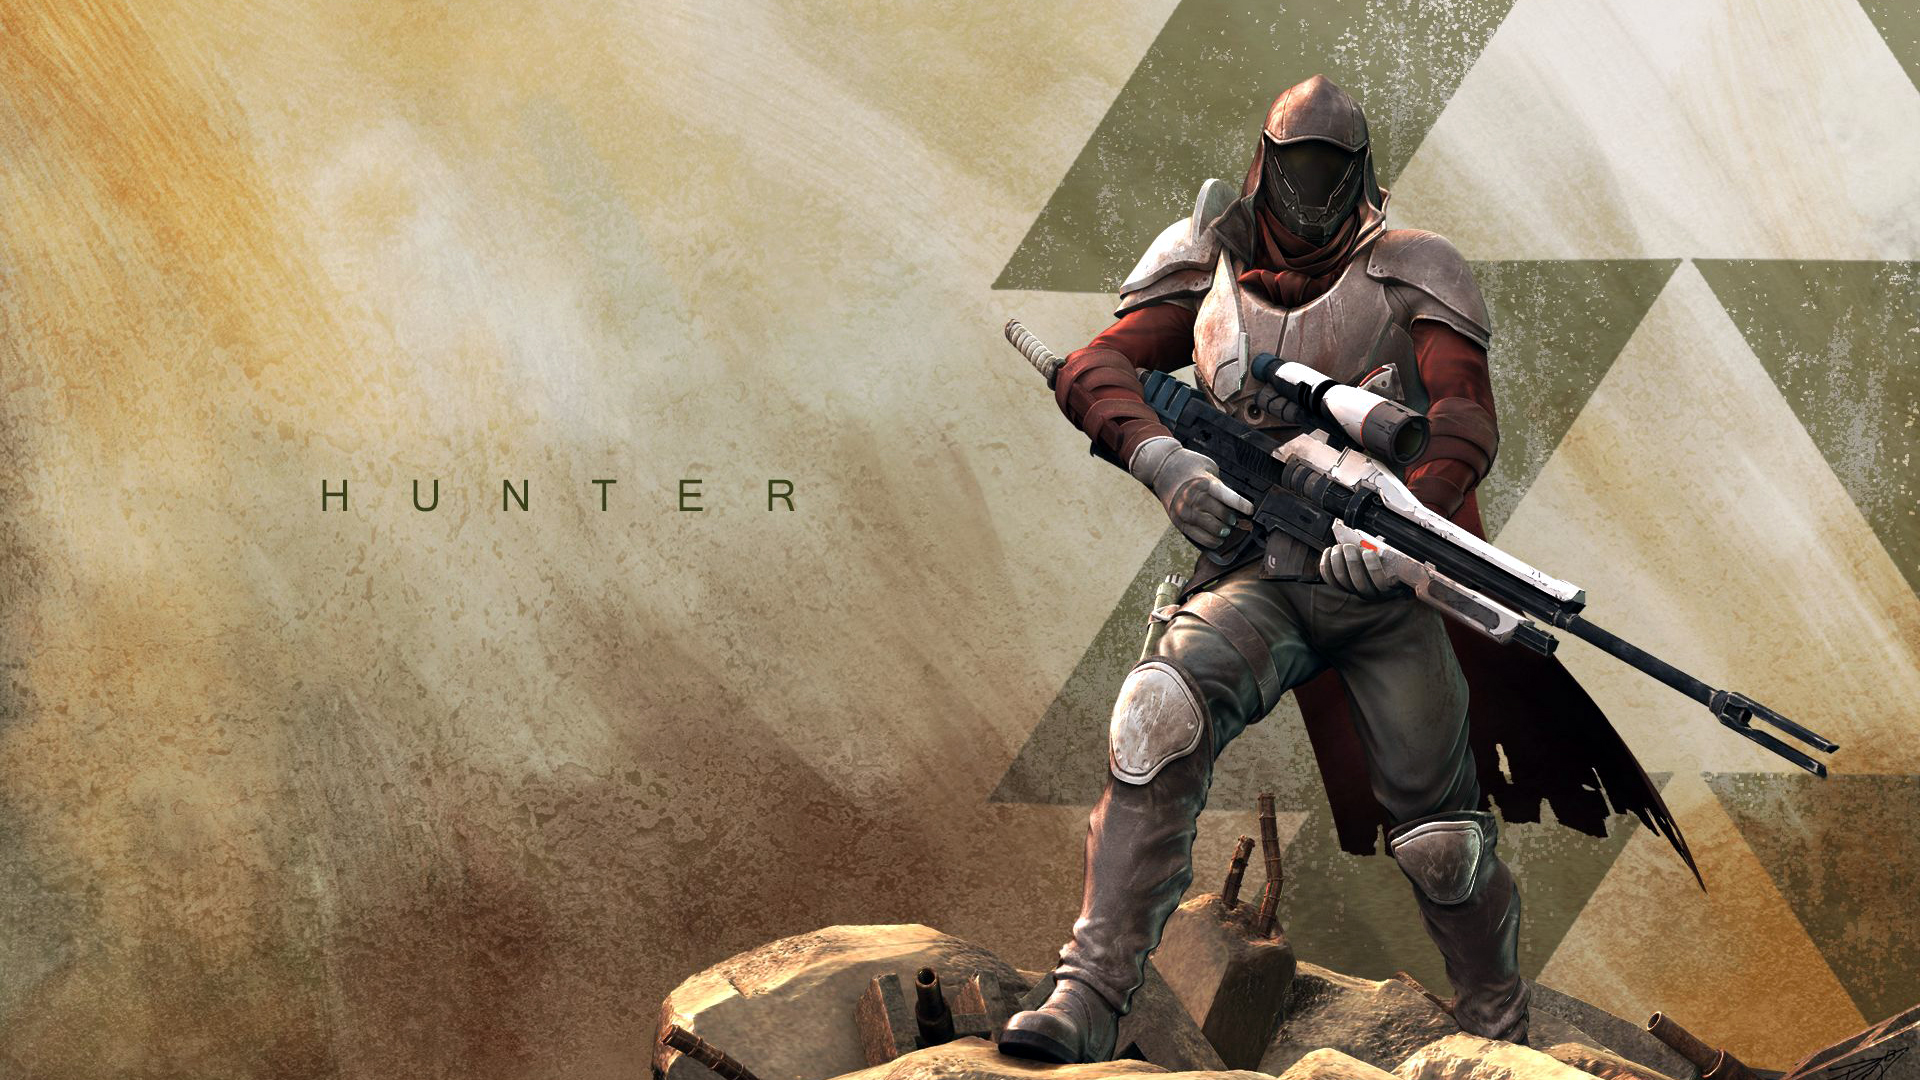 Hunter guardian class Destiny game HD 1920x1080 1080p and compatible 1920x1080